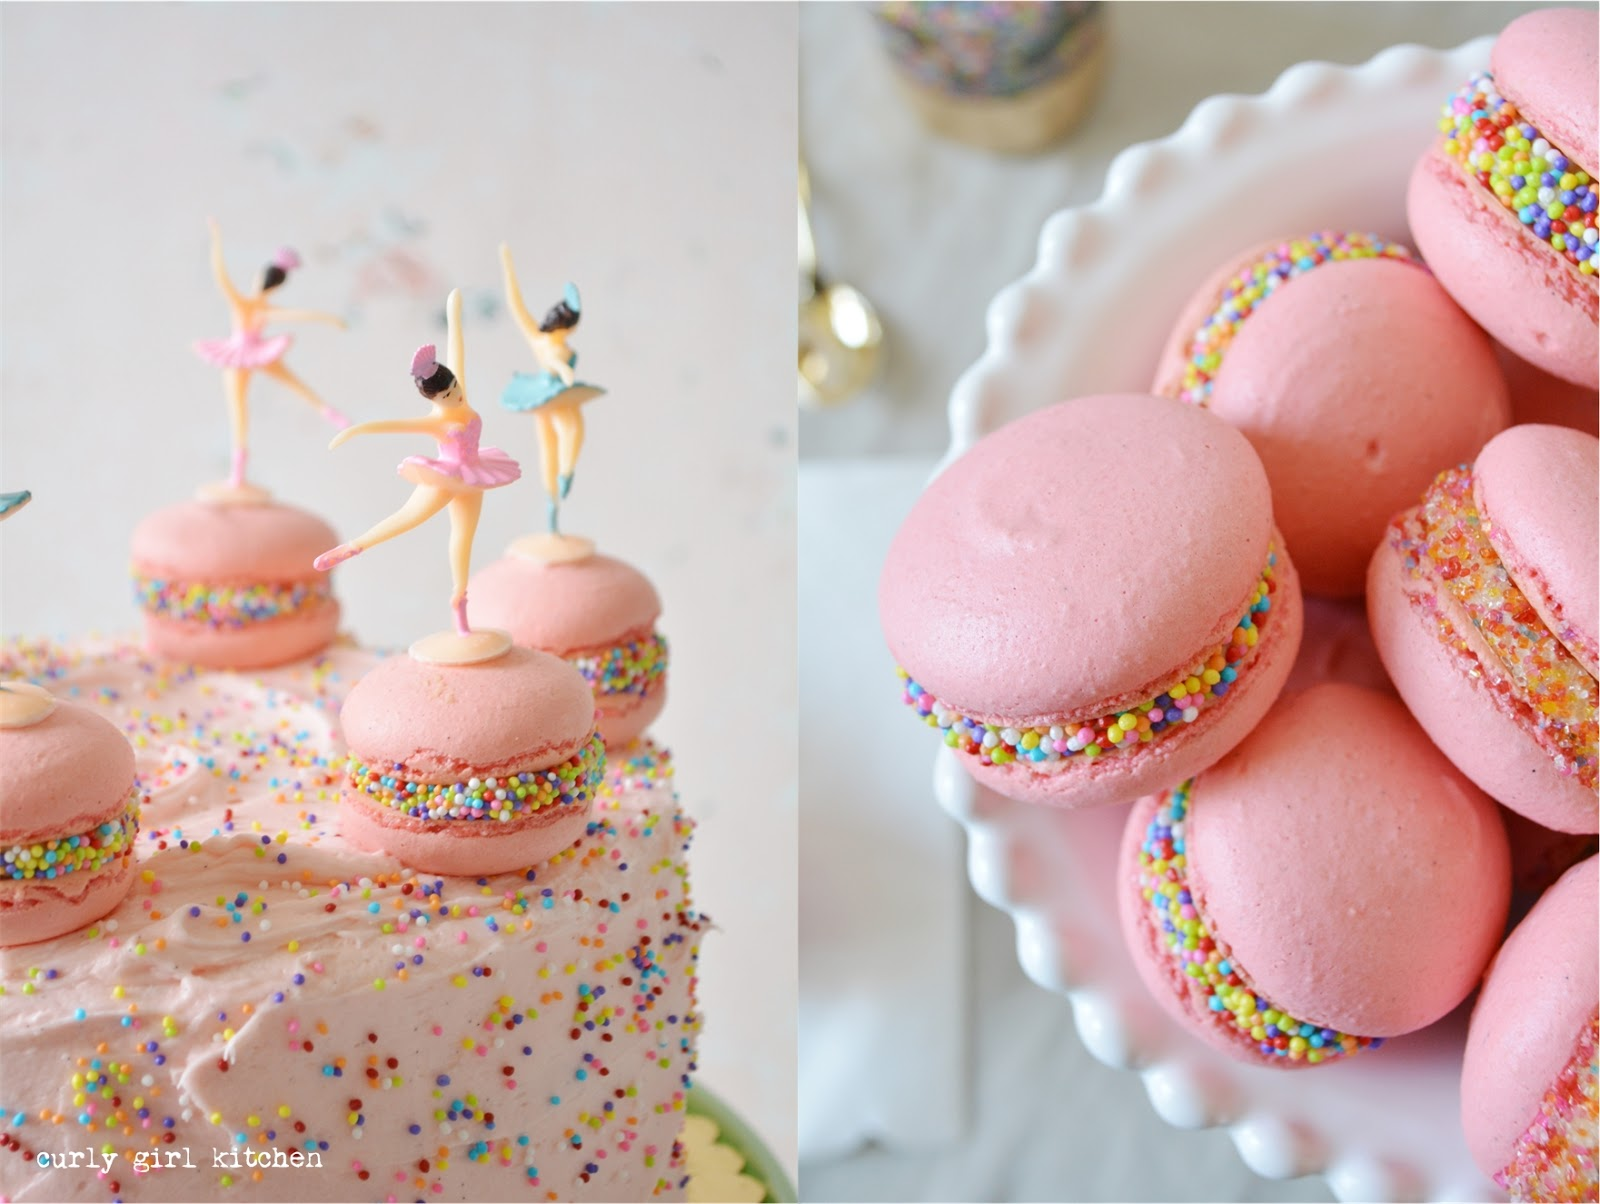 Curly Girl Kitchen: Pink Sprinkle Cake with Macarons